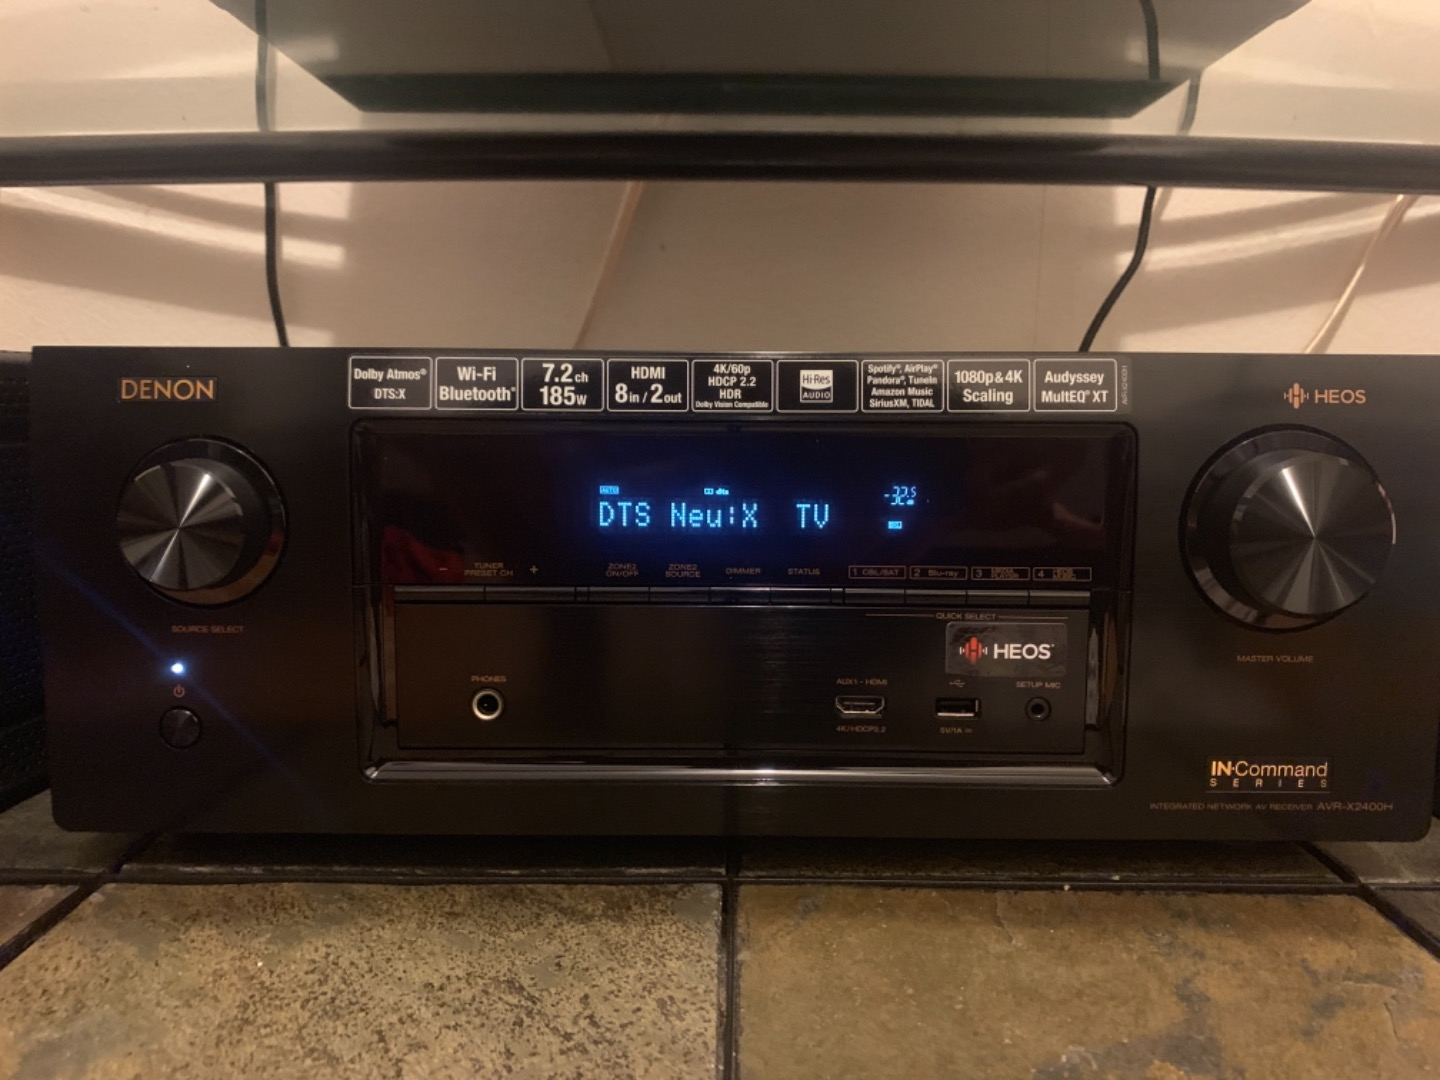 Denon AVR-X2400H IN-Command 7 2-channel home theater receiver with